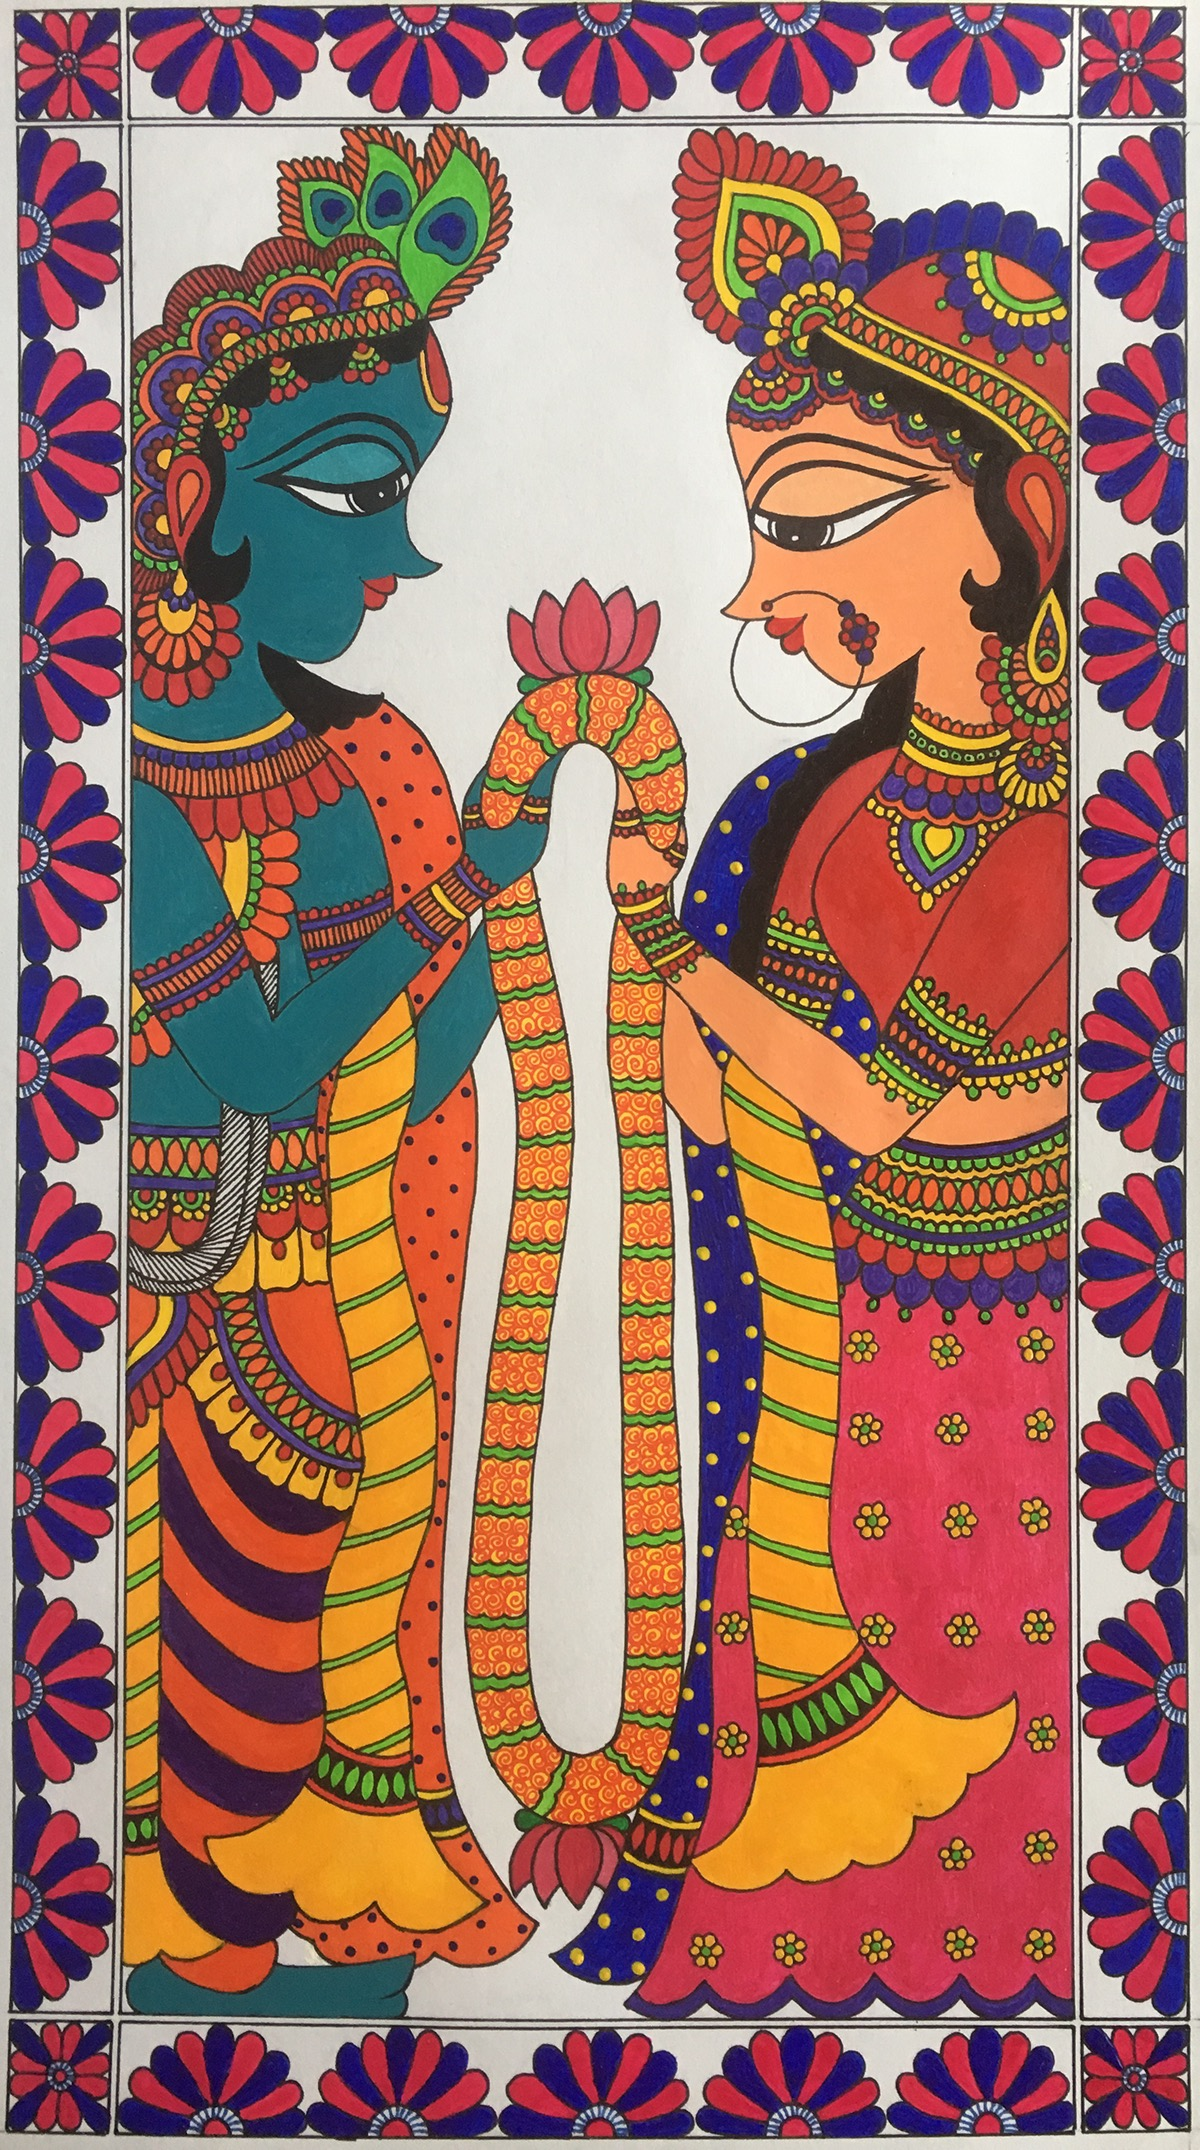 Kalamkari madhubani phad wedding invitation ganesha Radha Krishna tree of life Indian folk art Folk Paintings